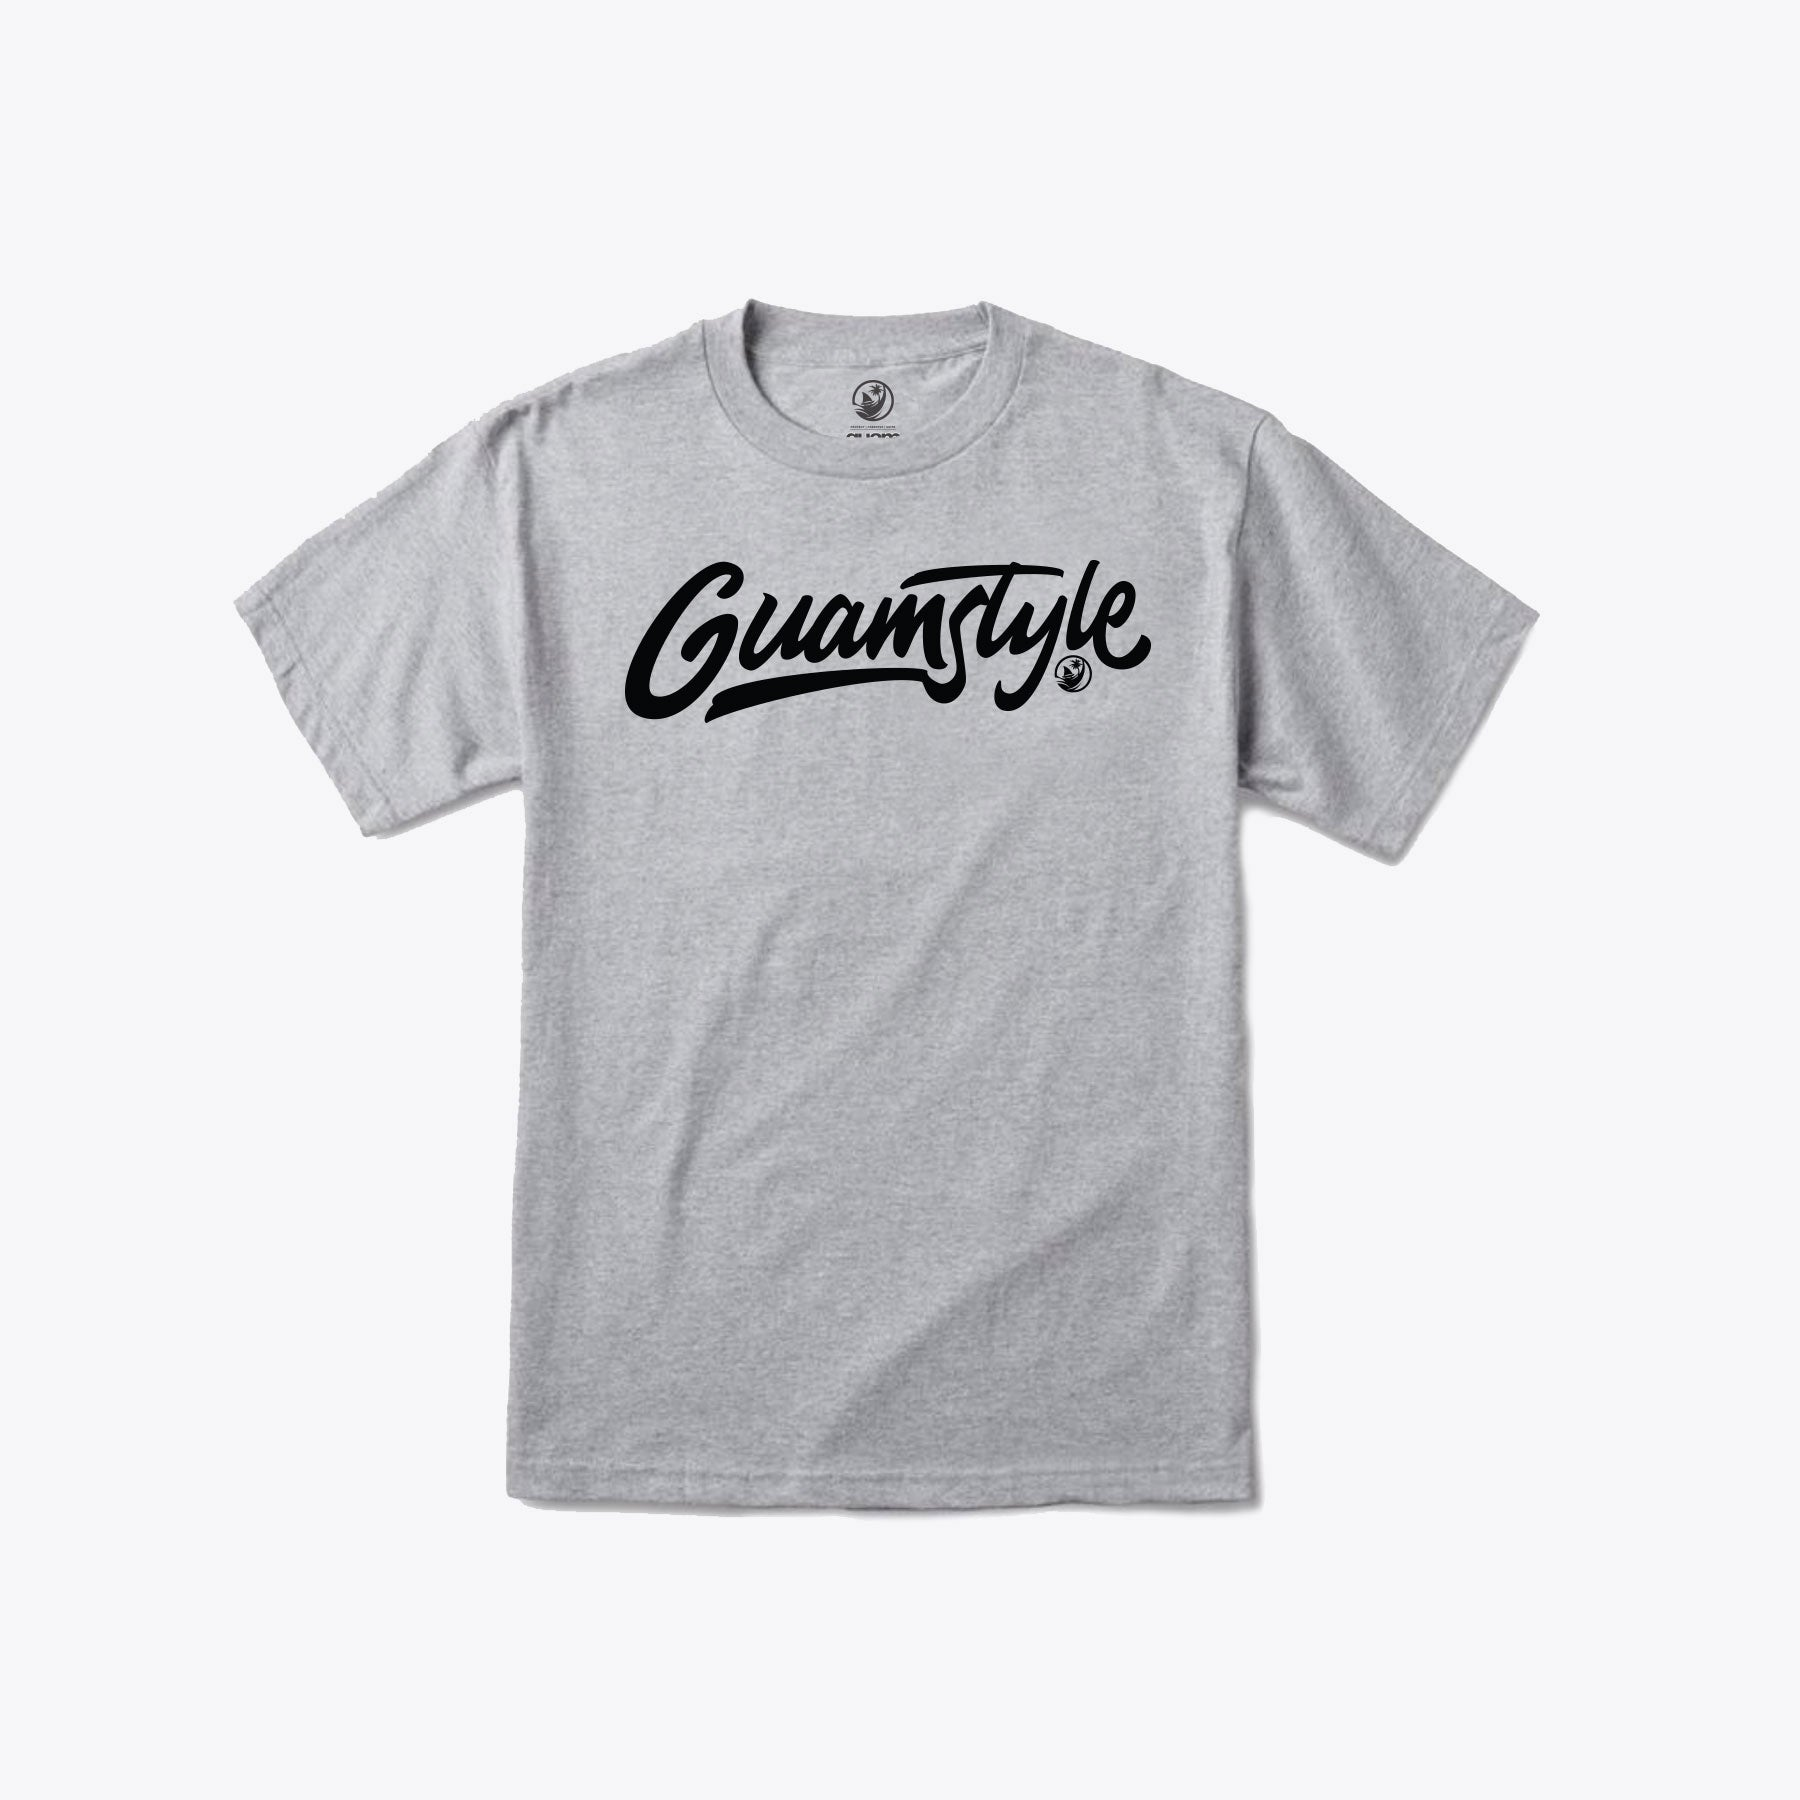 Script Tee by Guamstyle